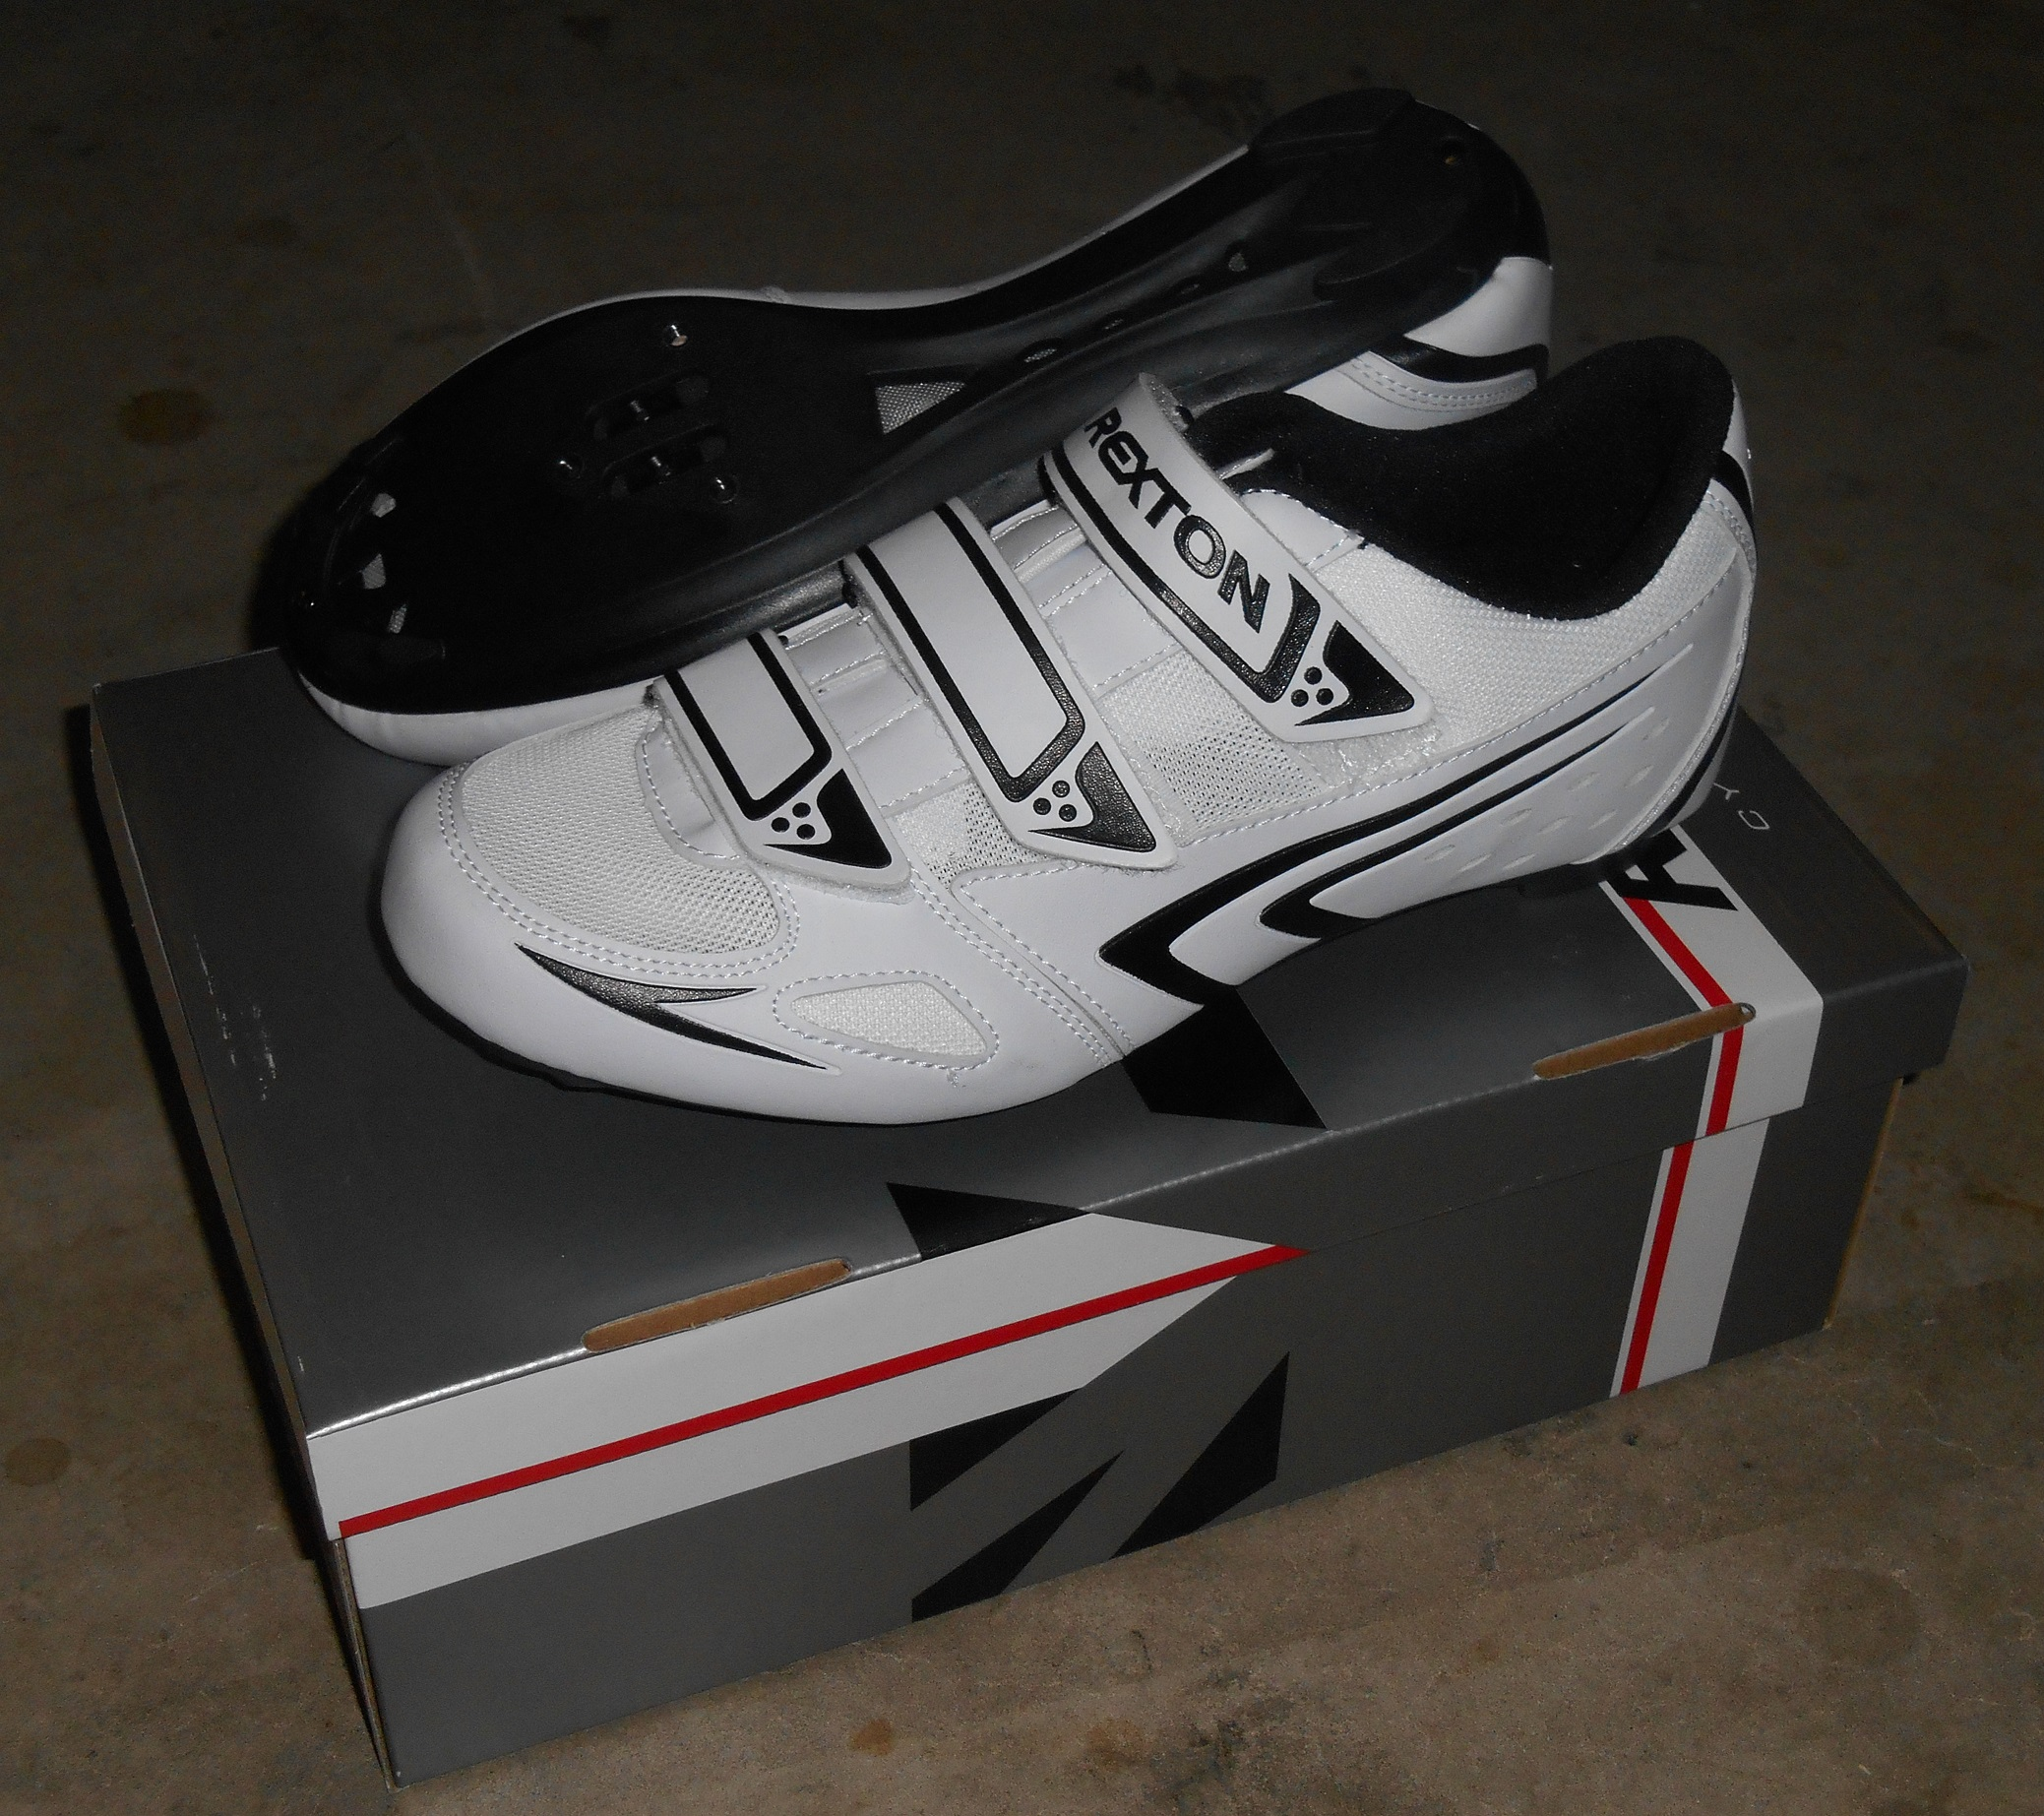 Rexton Road Bike Cycling Shoes Size EU 40 / UK 6.5 Shimano / Look Compatible